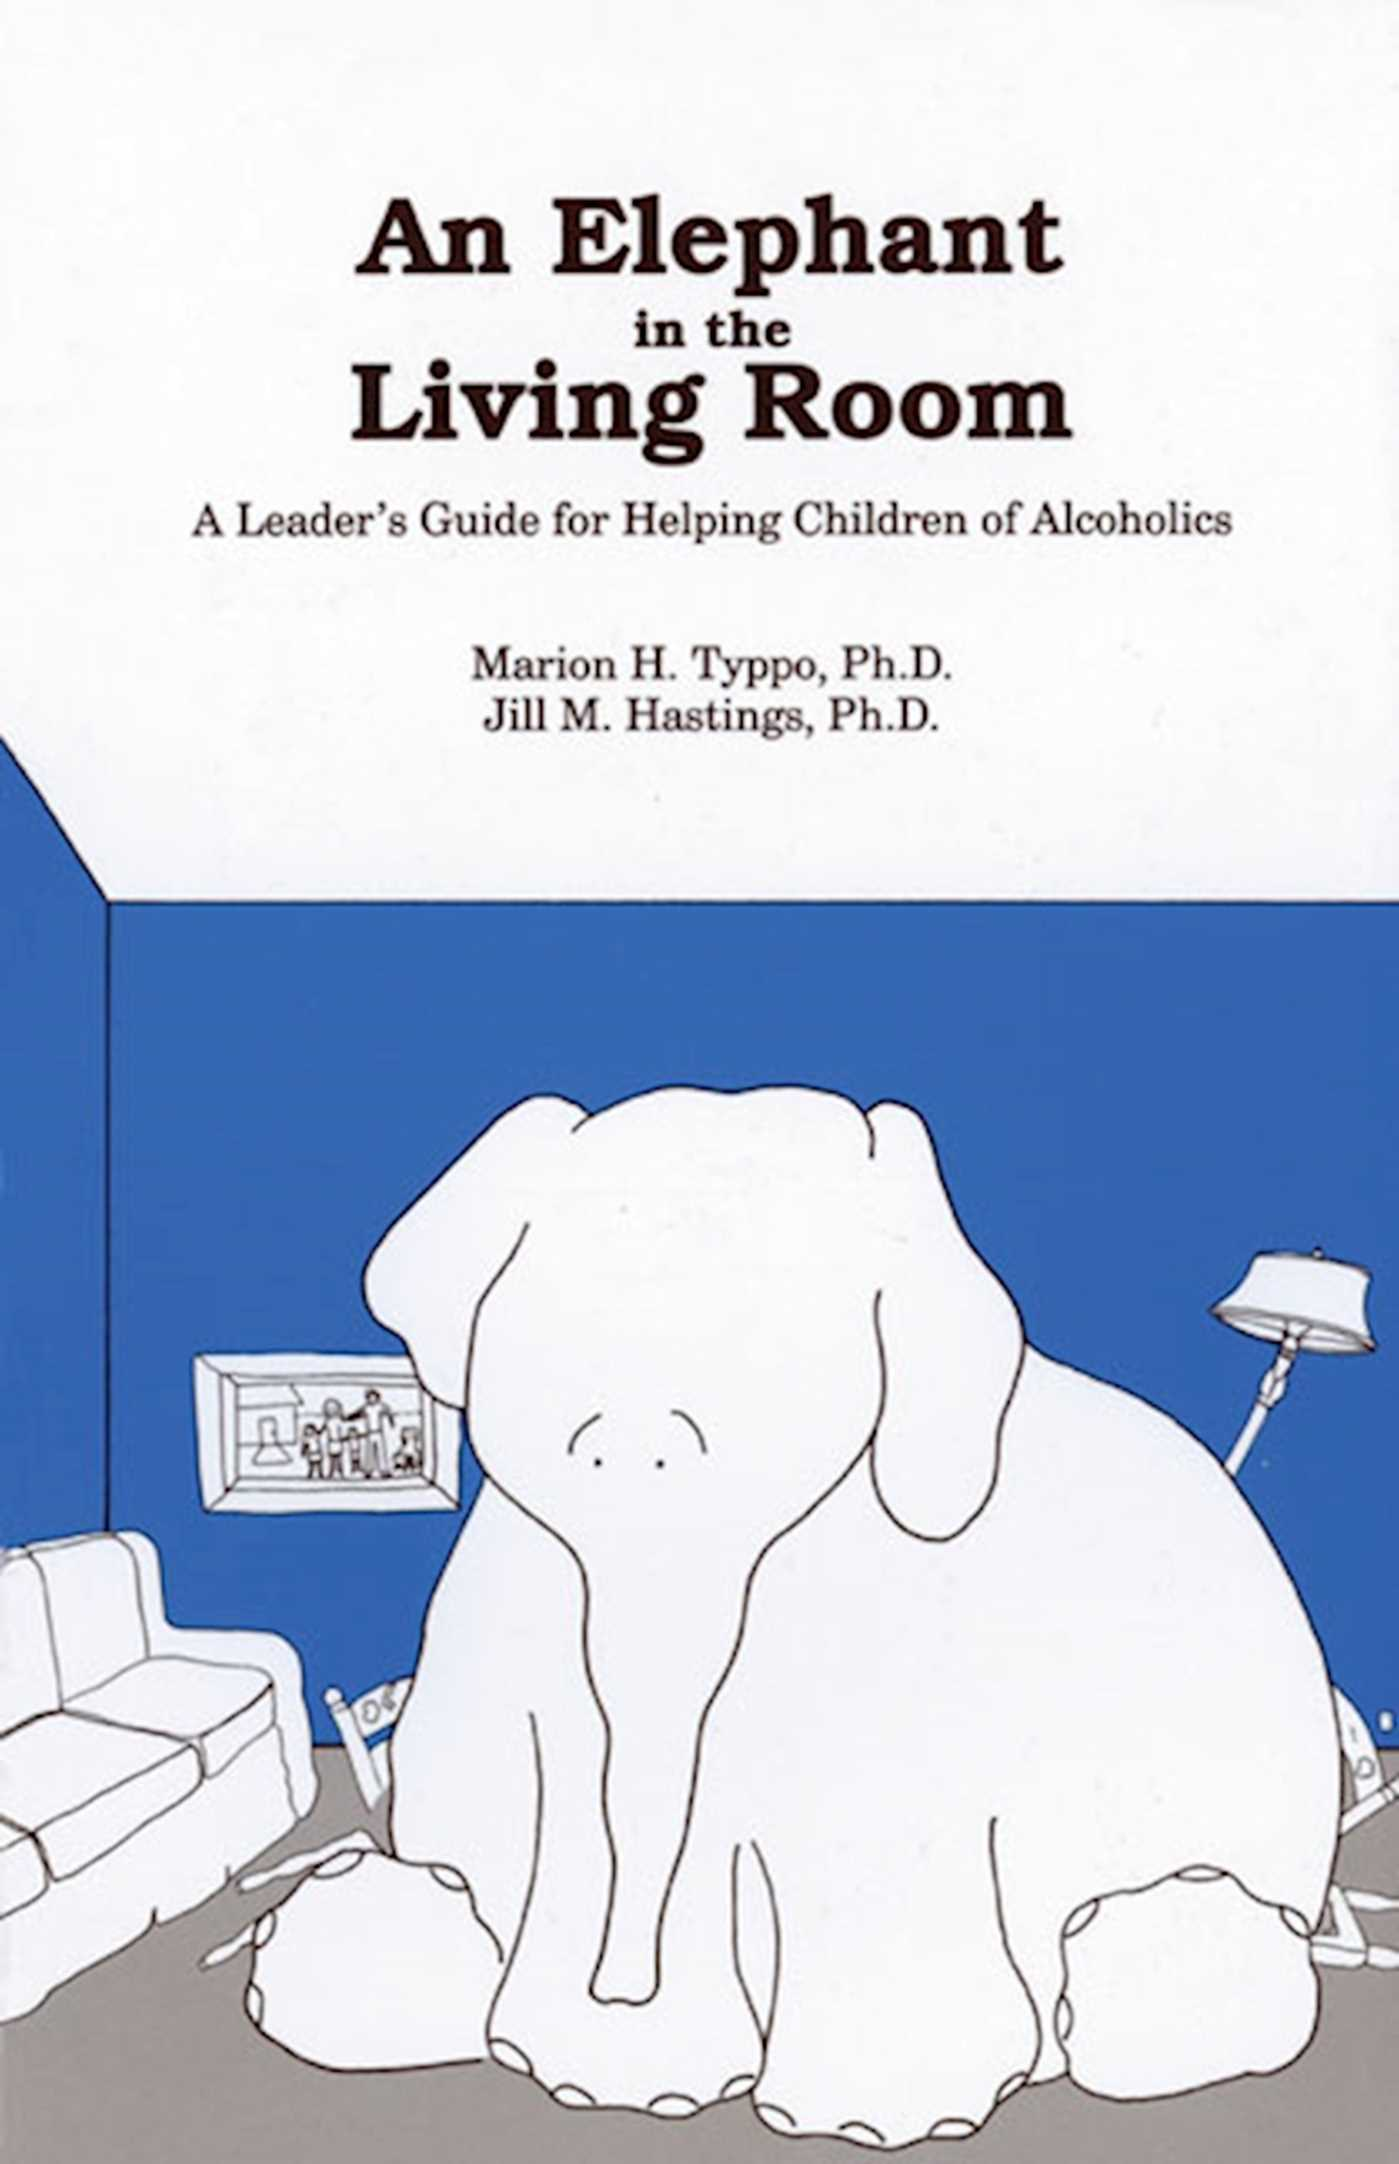 an elephant in the living room leaders guide 9781568380346 hr - The Elephant In The Living Room